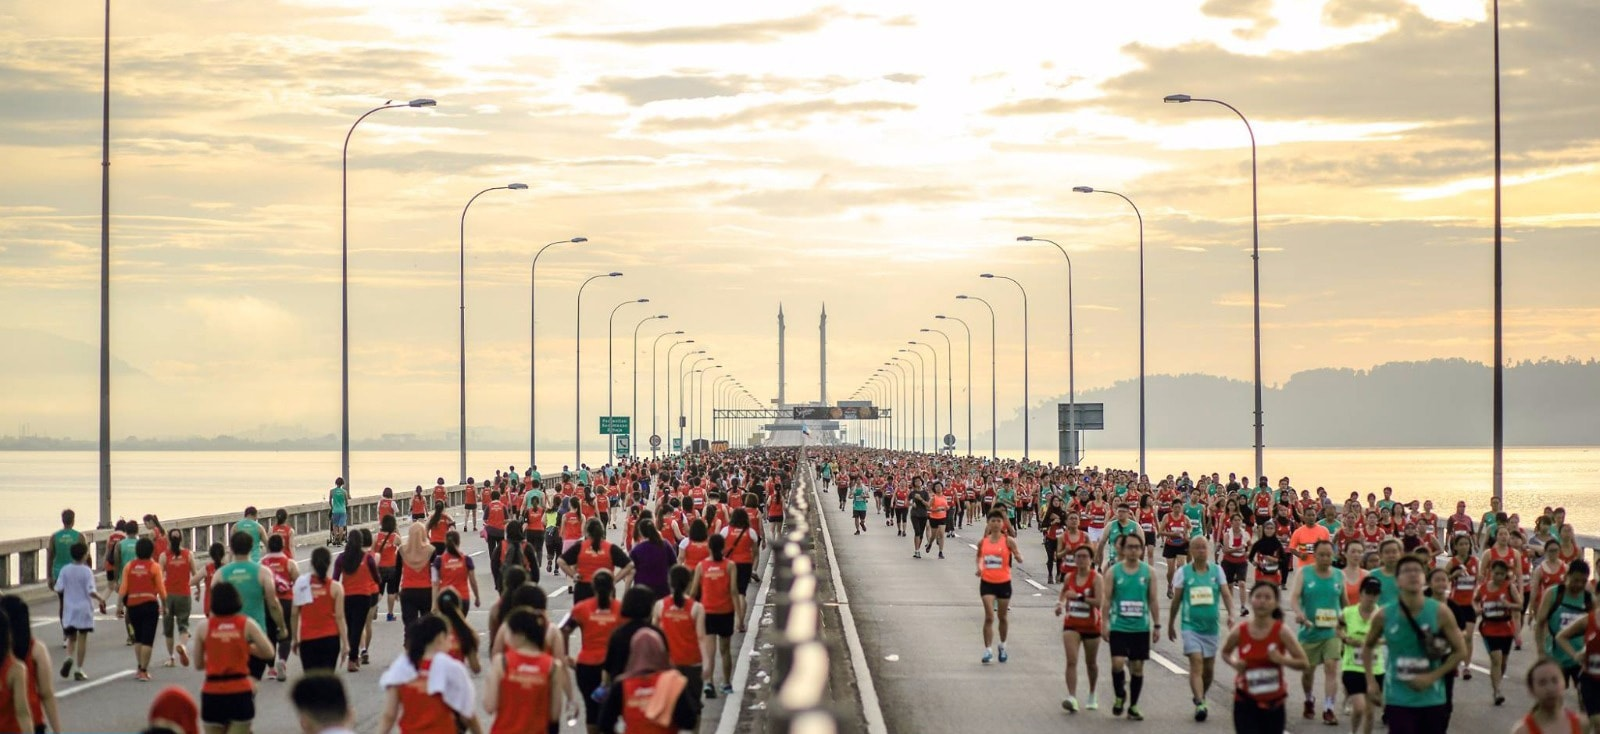 Image from Penang Bridge International Marathon